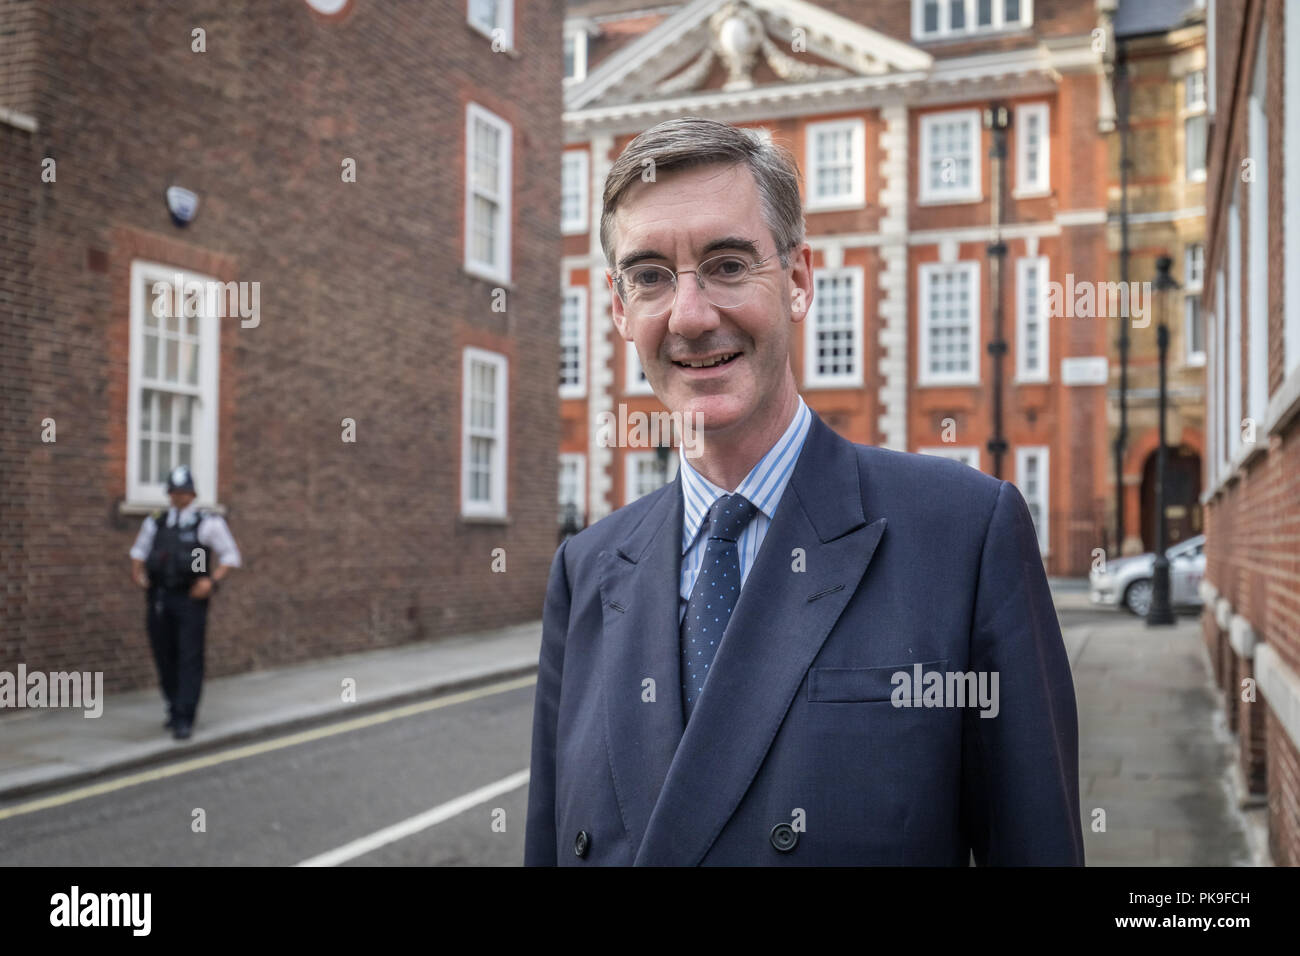 Jacob Rees-Mogg, Converative MP Stock Photo